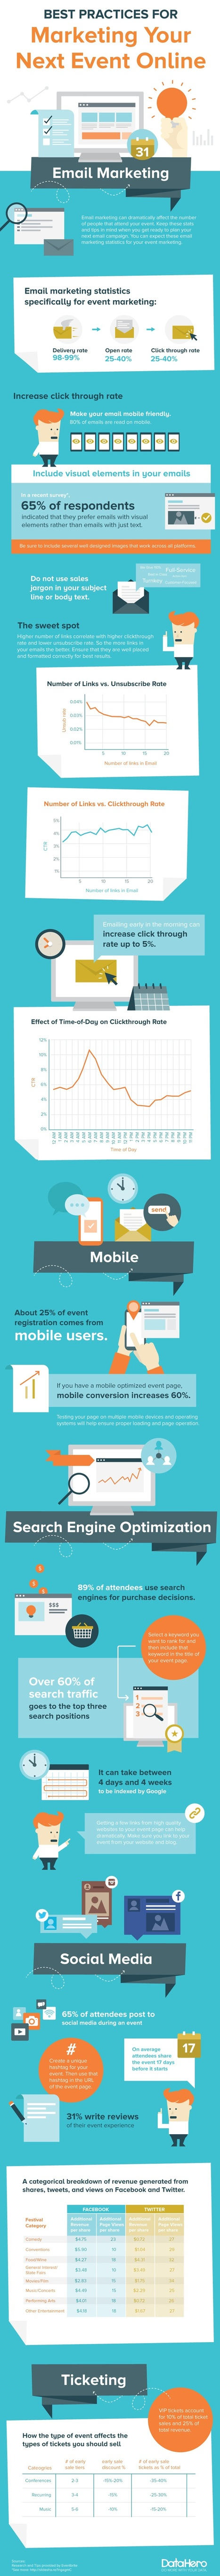 How to Promote an Event Using Online Marketing #Infographic | digital marketing strategy | Scoop.it